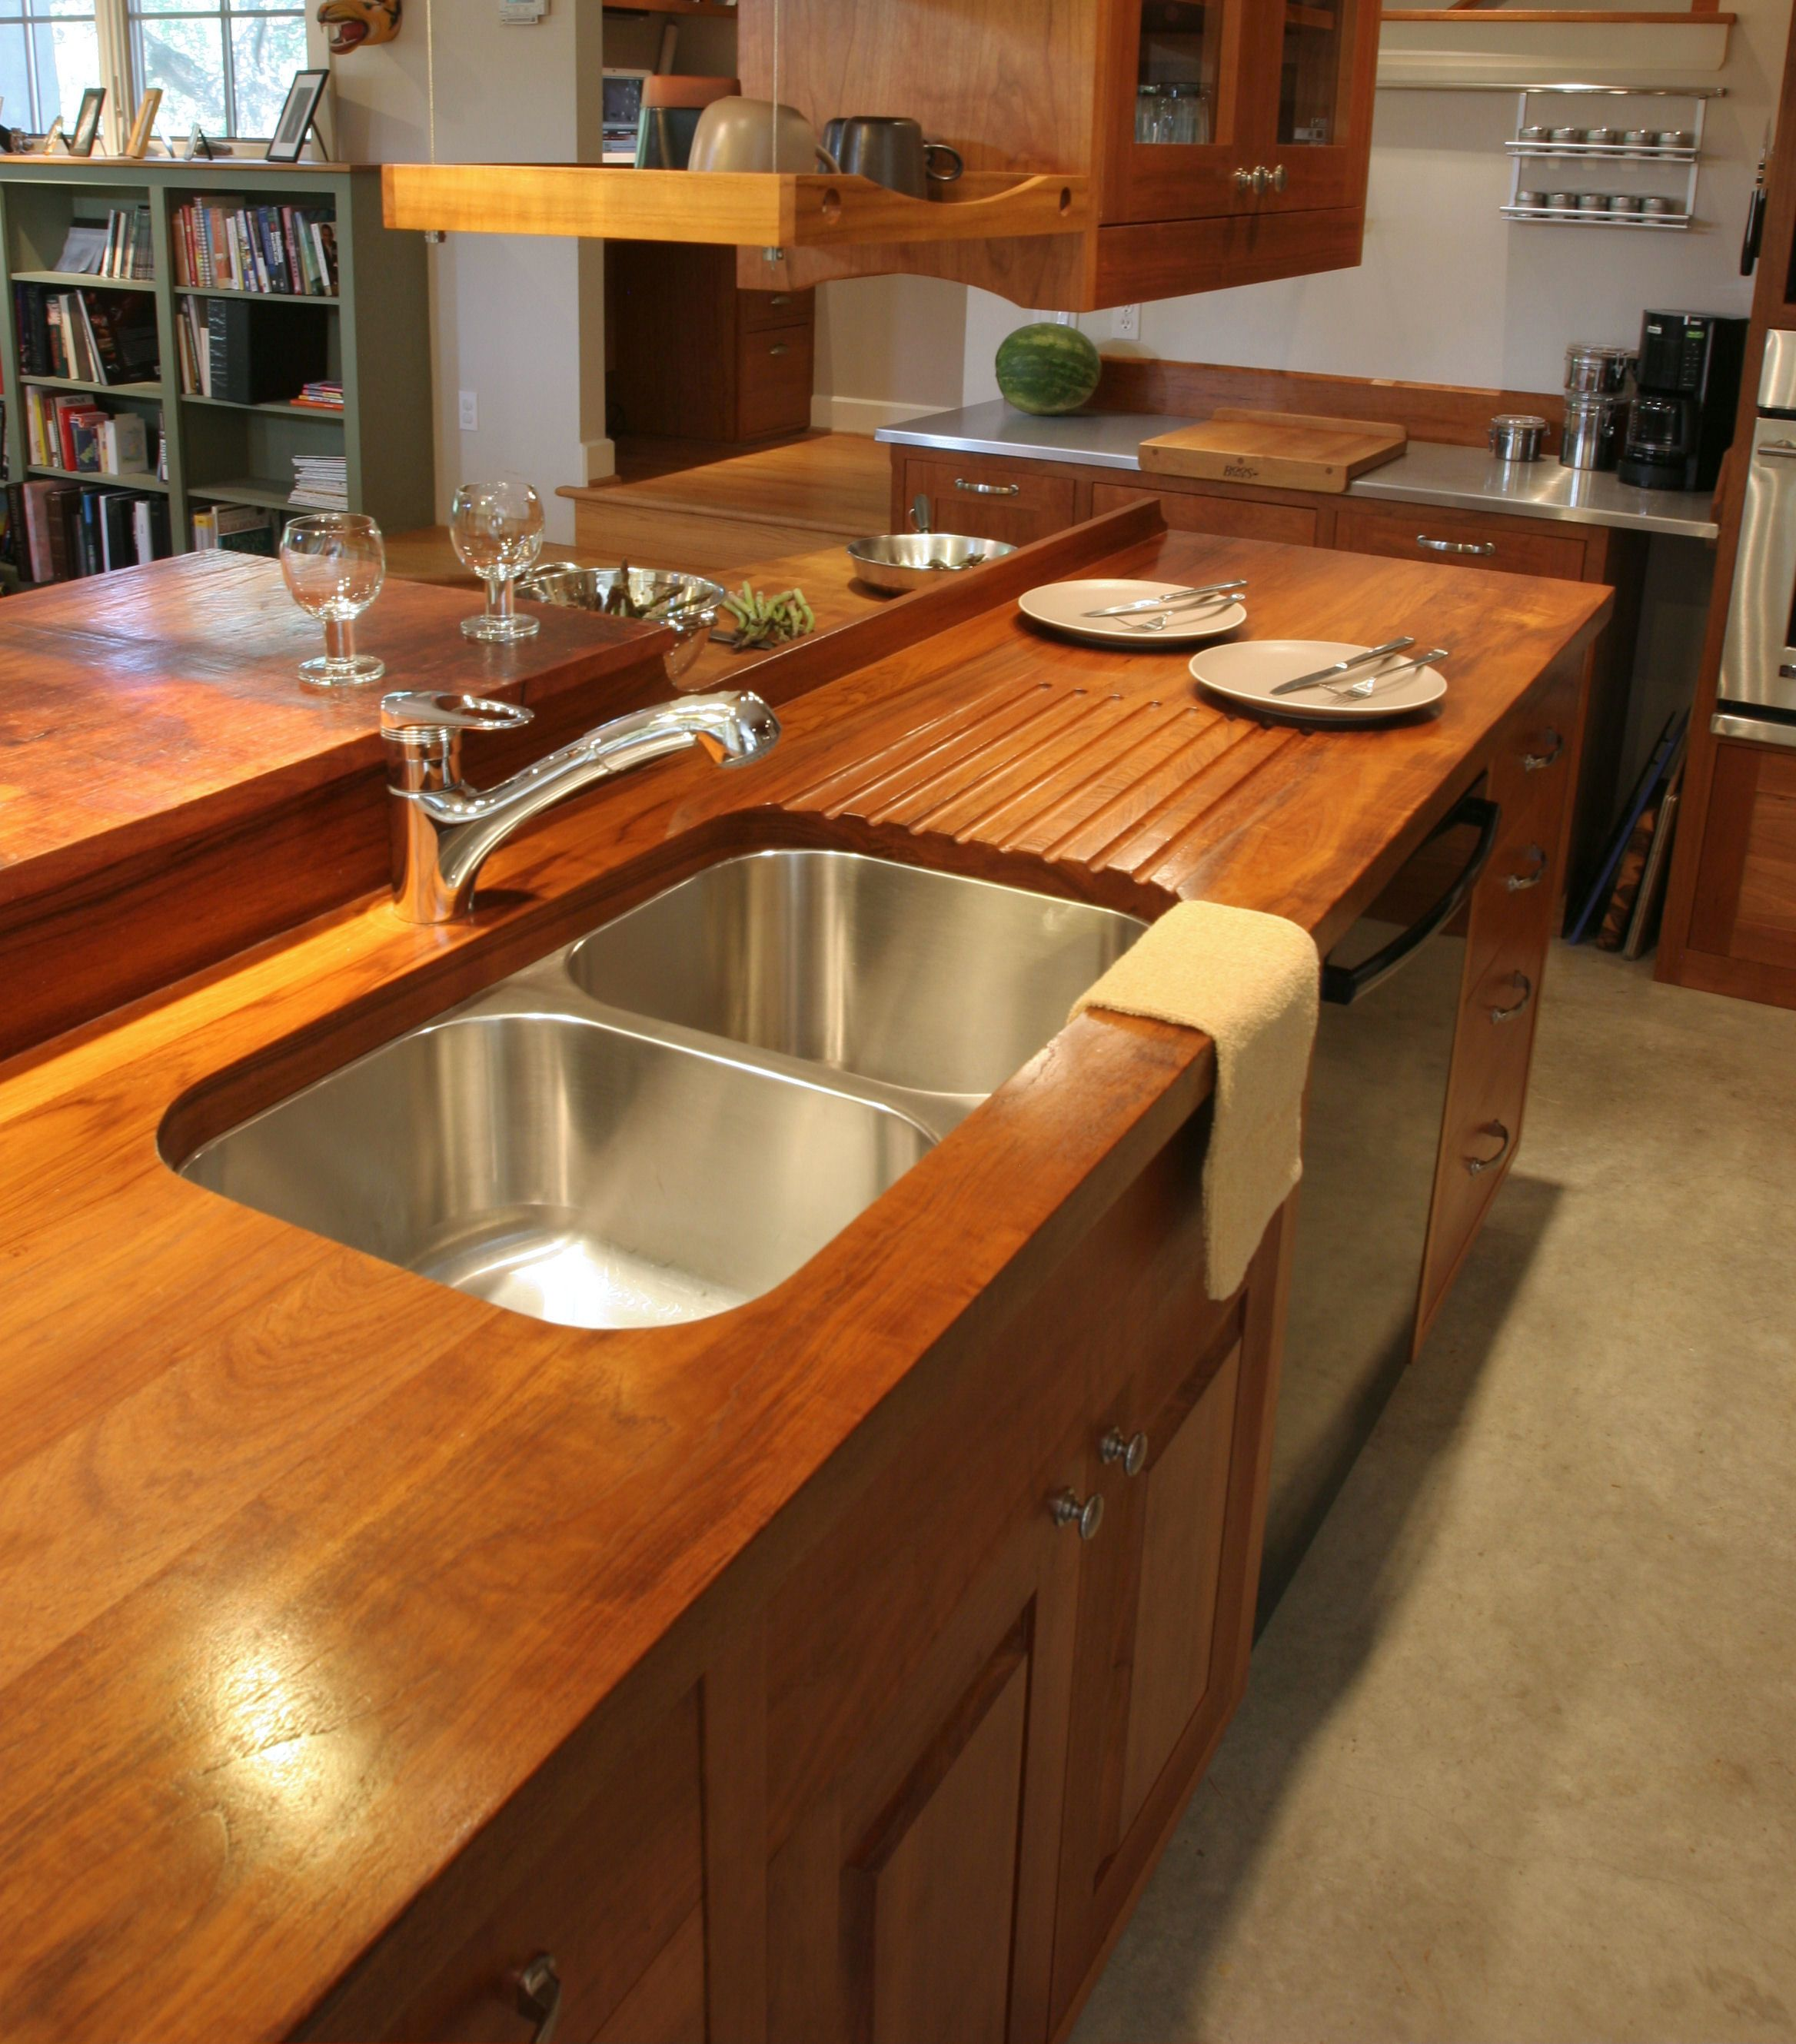 How To Waterproof Wood Countertop Sink Cutouts In Custom Wood Countertops